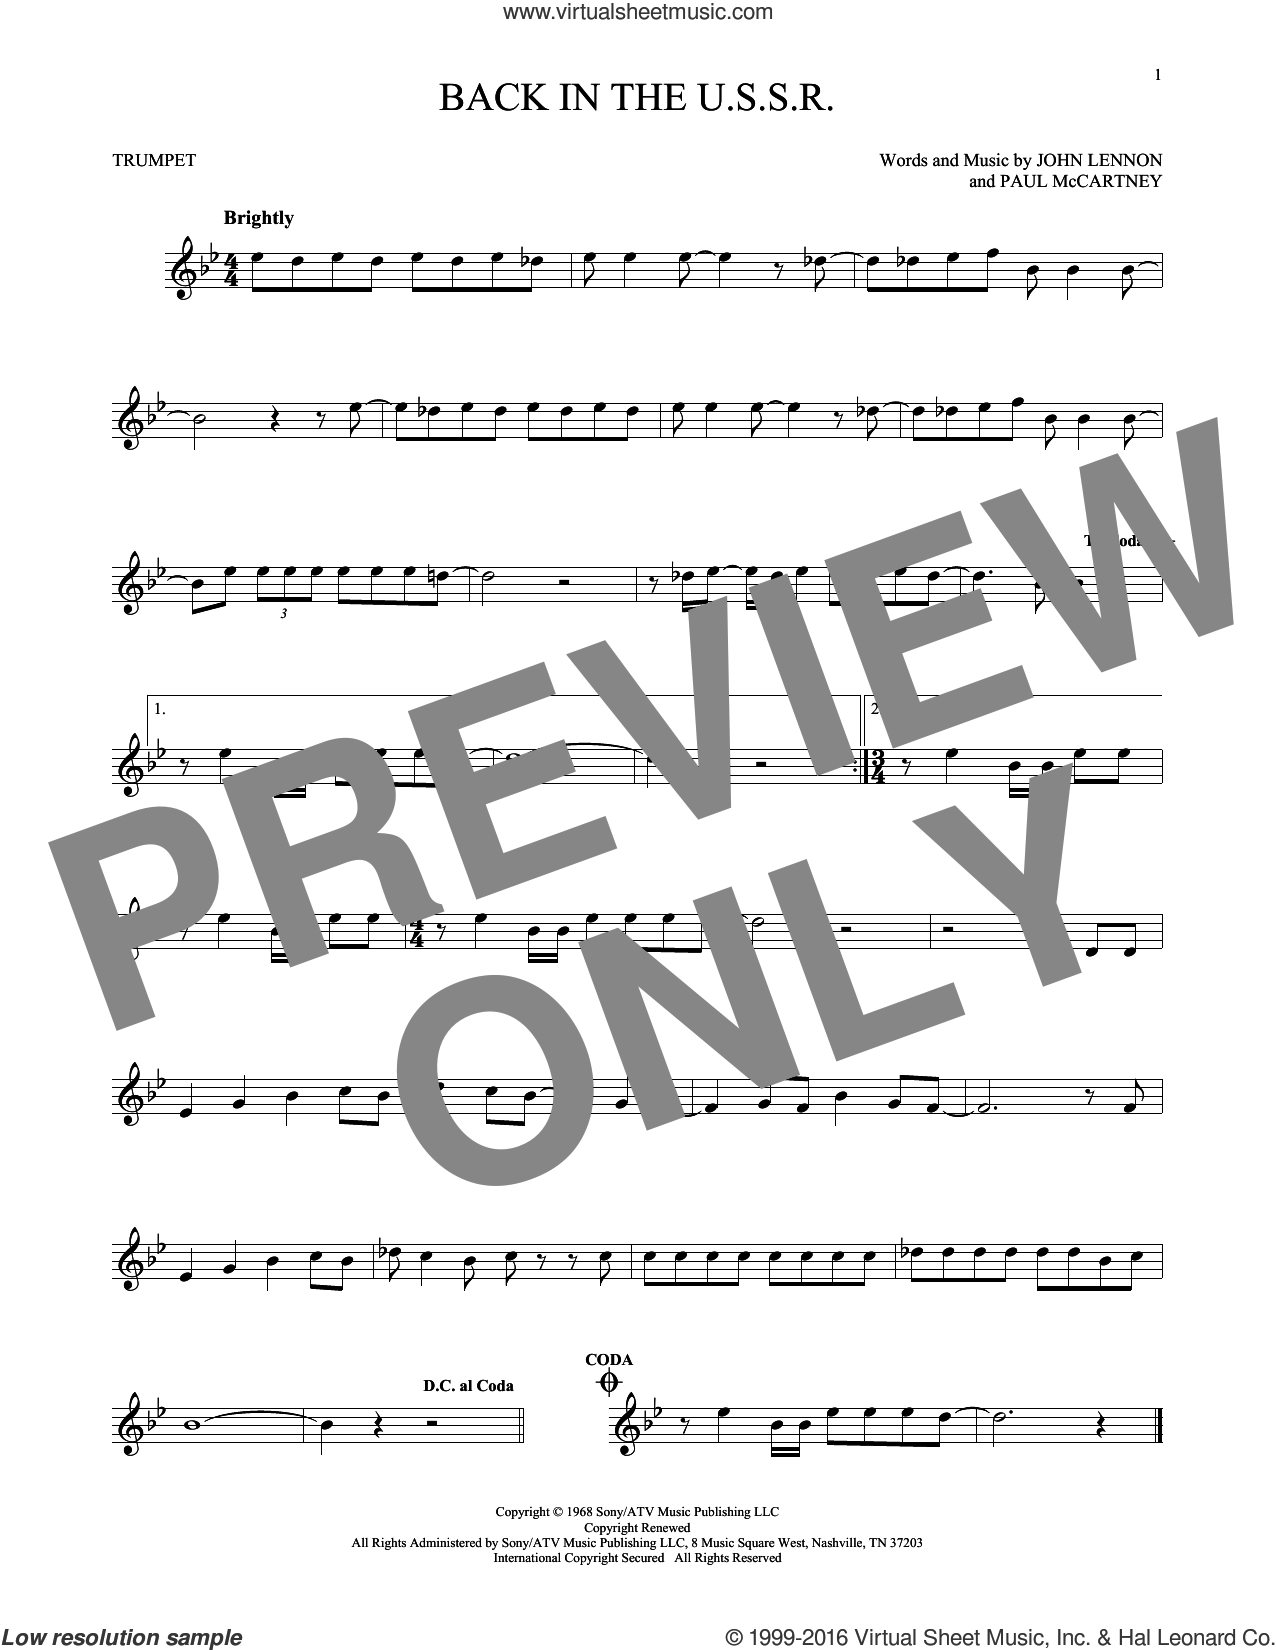 Back In The U.S.S.R. sheet music for trumpet solo by The Beatles, John Lennon and Paul McCartney, intermediate skill level